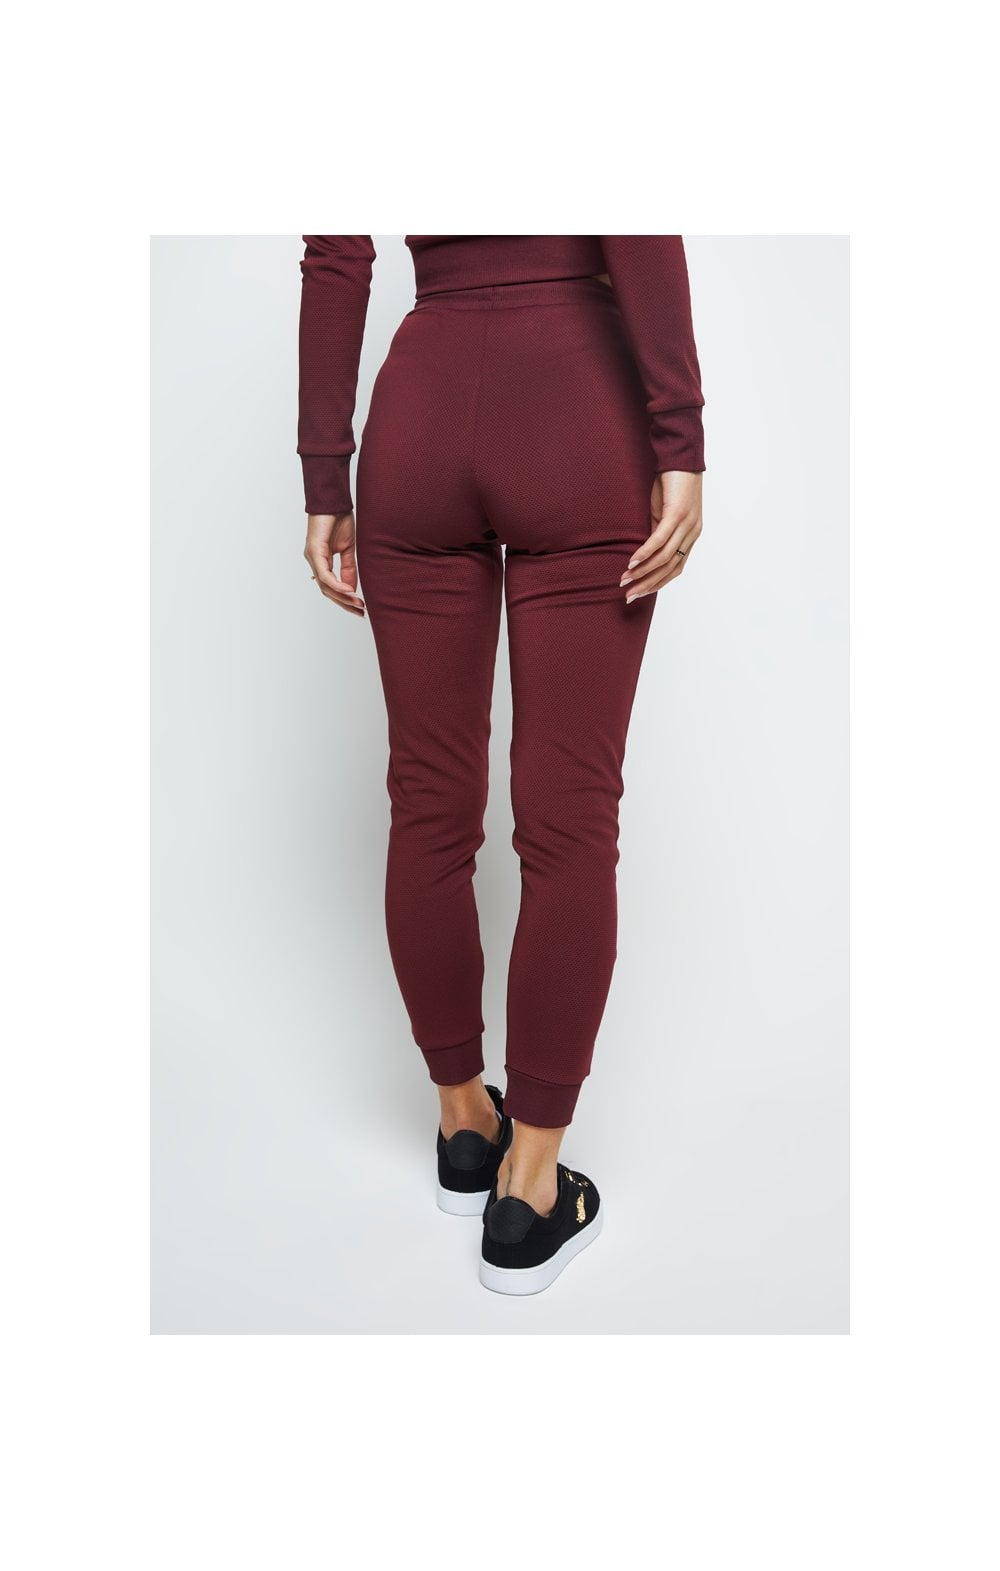 Load image into Gallery viewer, SikSilk Eyelet Mesh Track Pants - Burgundy (5)